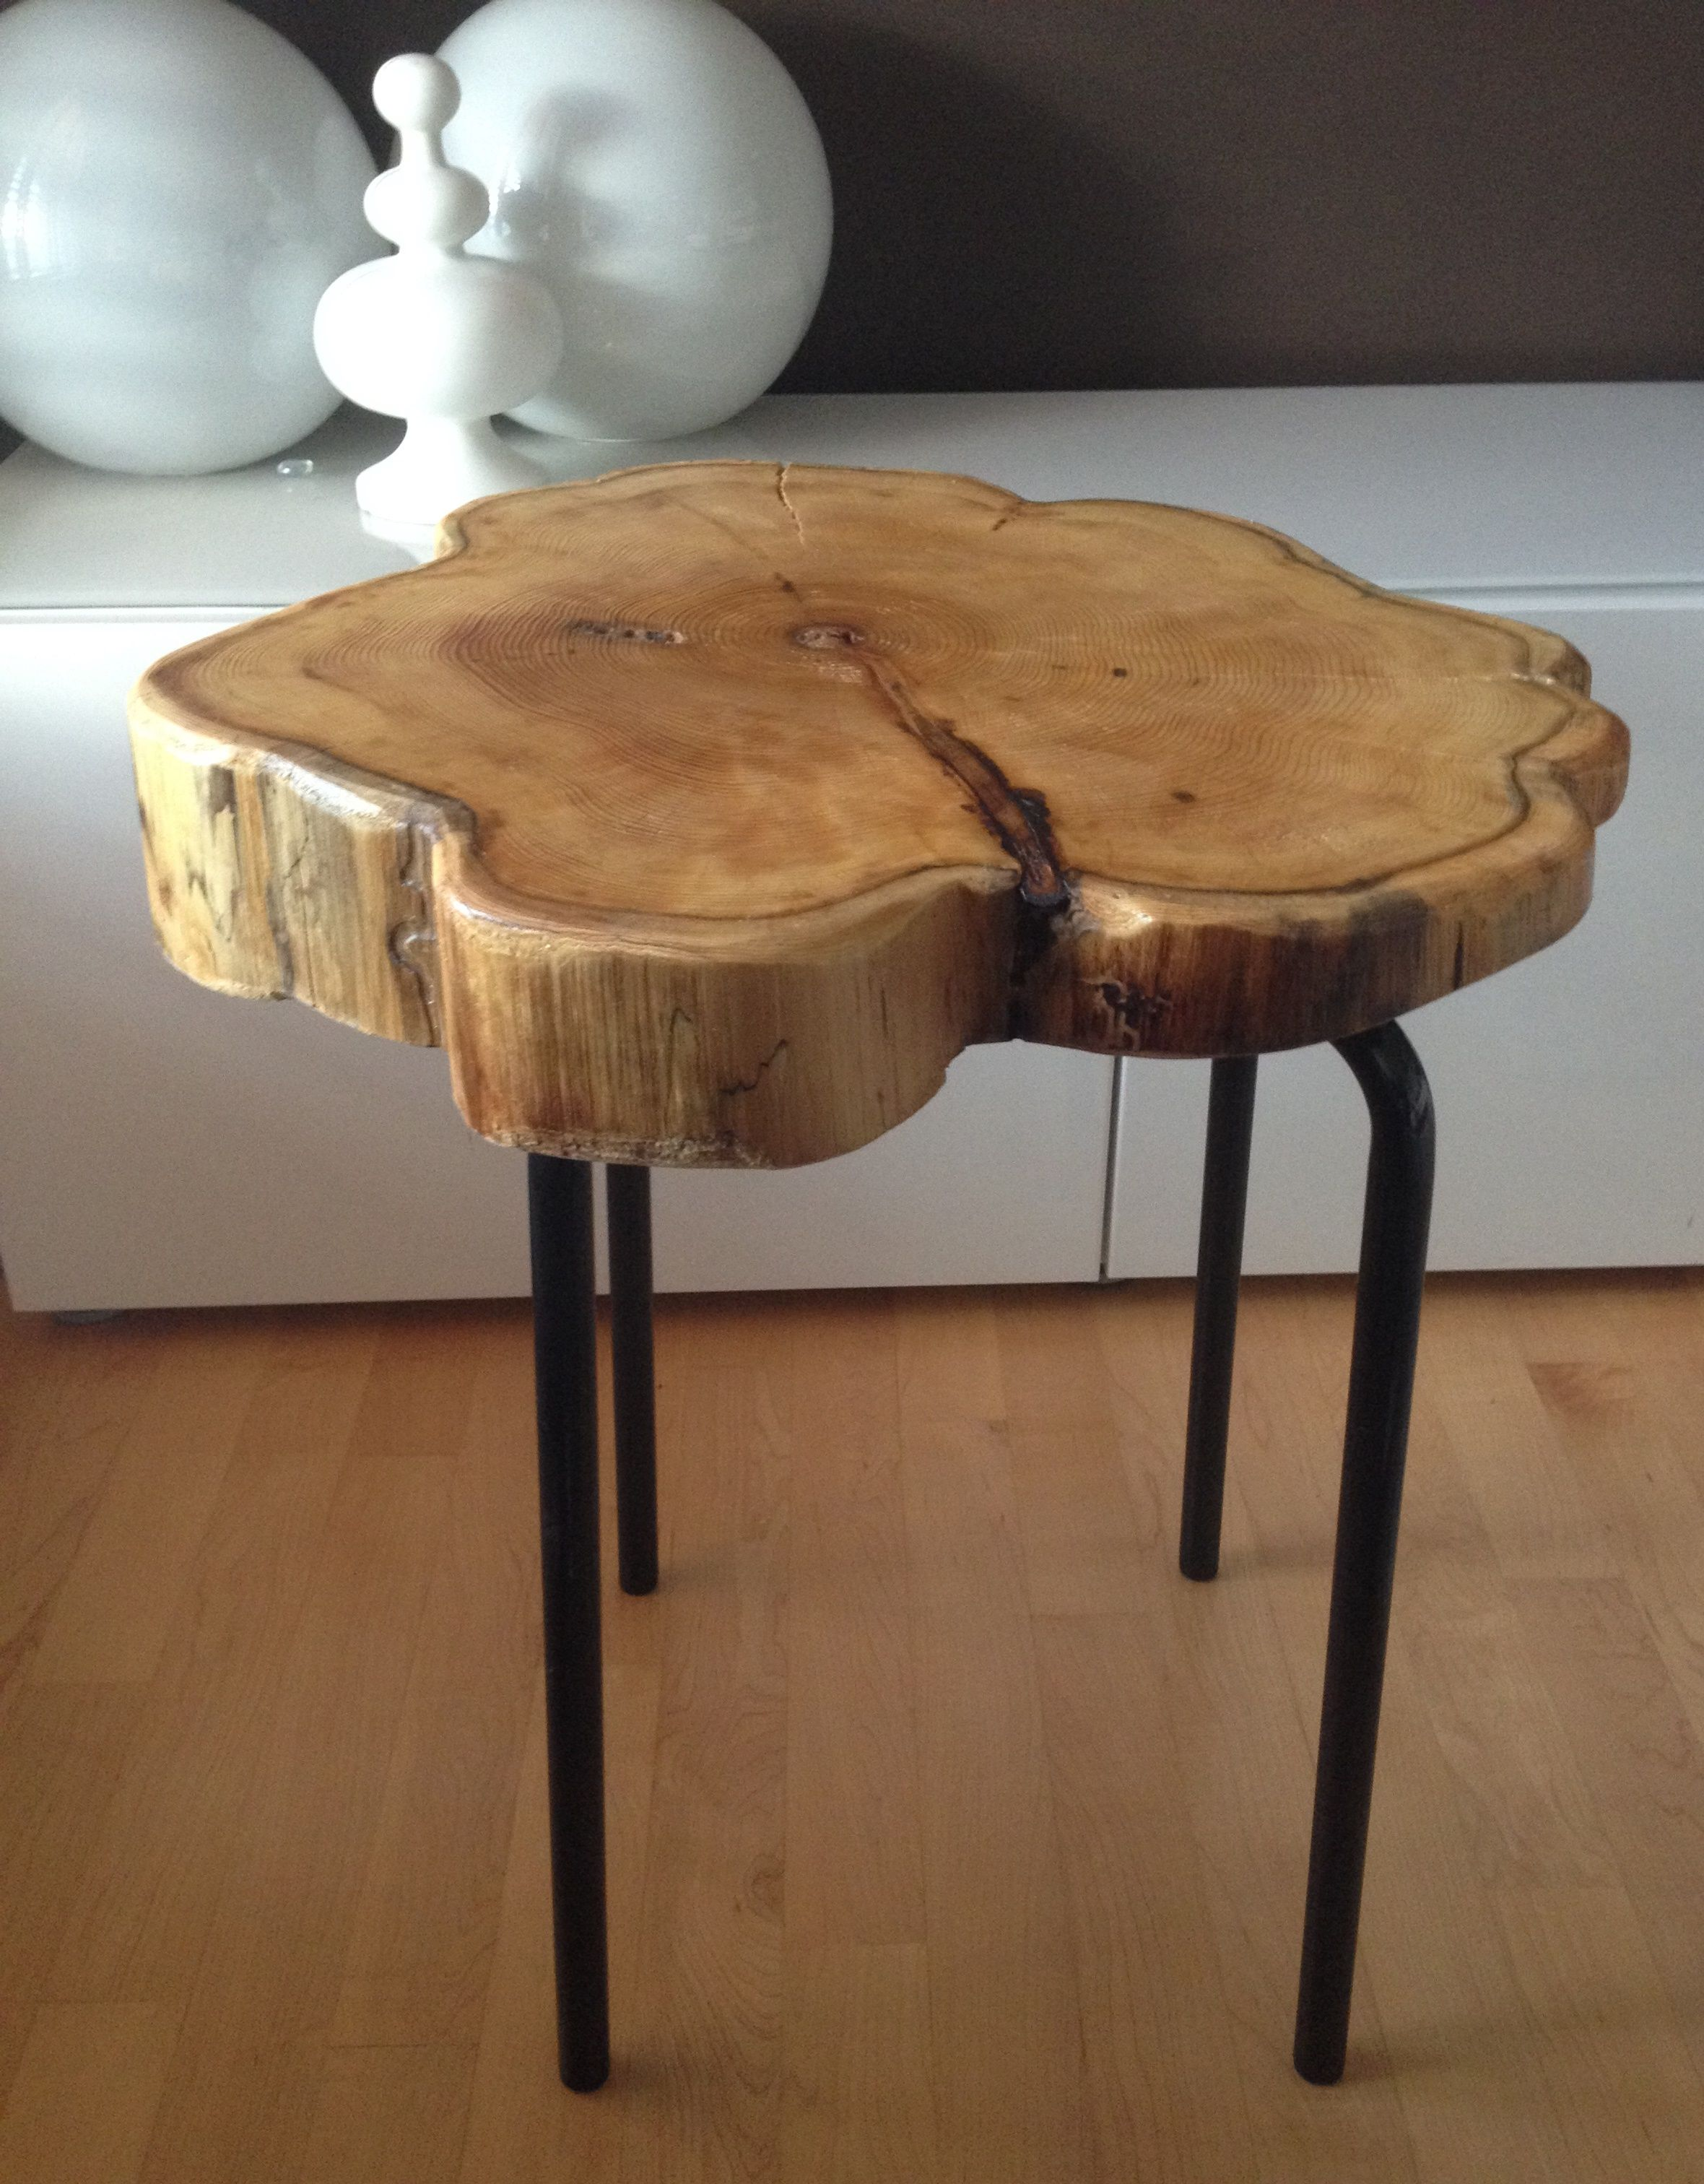 End Tables With Metal Legs Live Edge Table With Hairpin Legs Live Edge Coffee Table